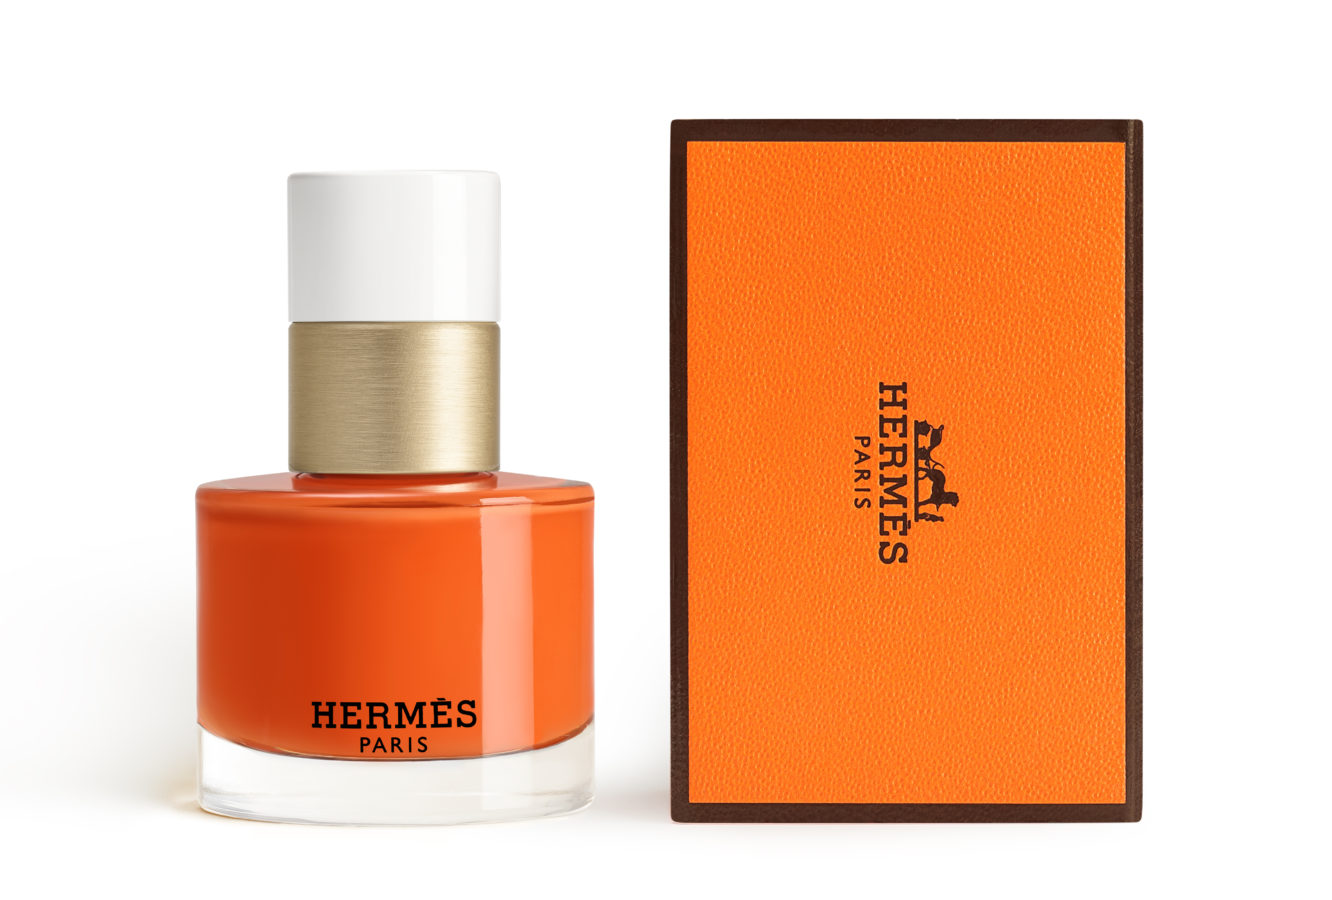 Hermès Beauty's new nail polish and hand care range is the ultimate manicure flex